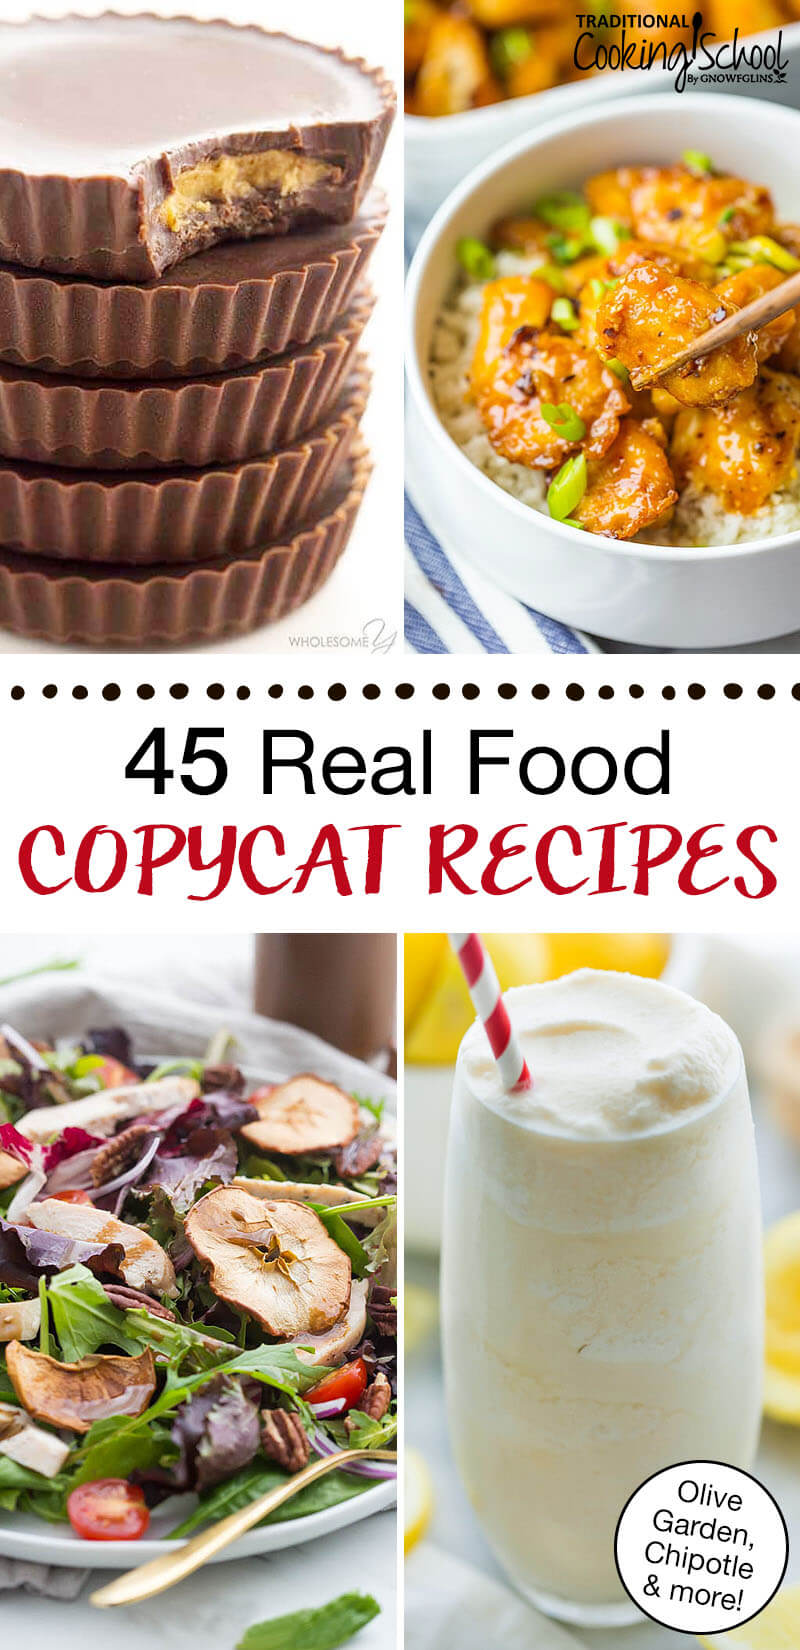 45 Real Food Copycat Recipes (Olive Garden, Chipotle & more!)